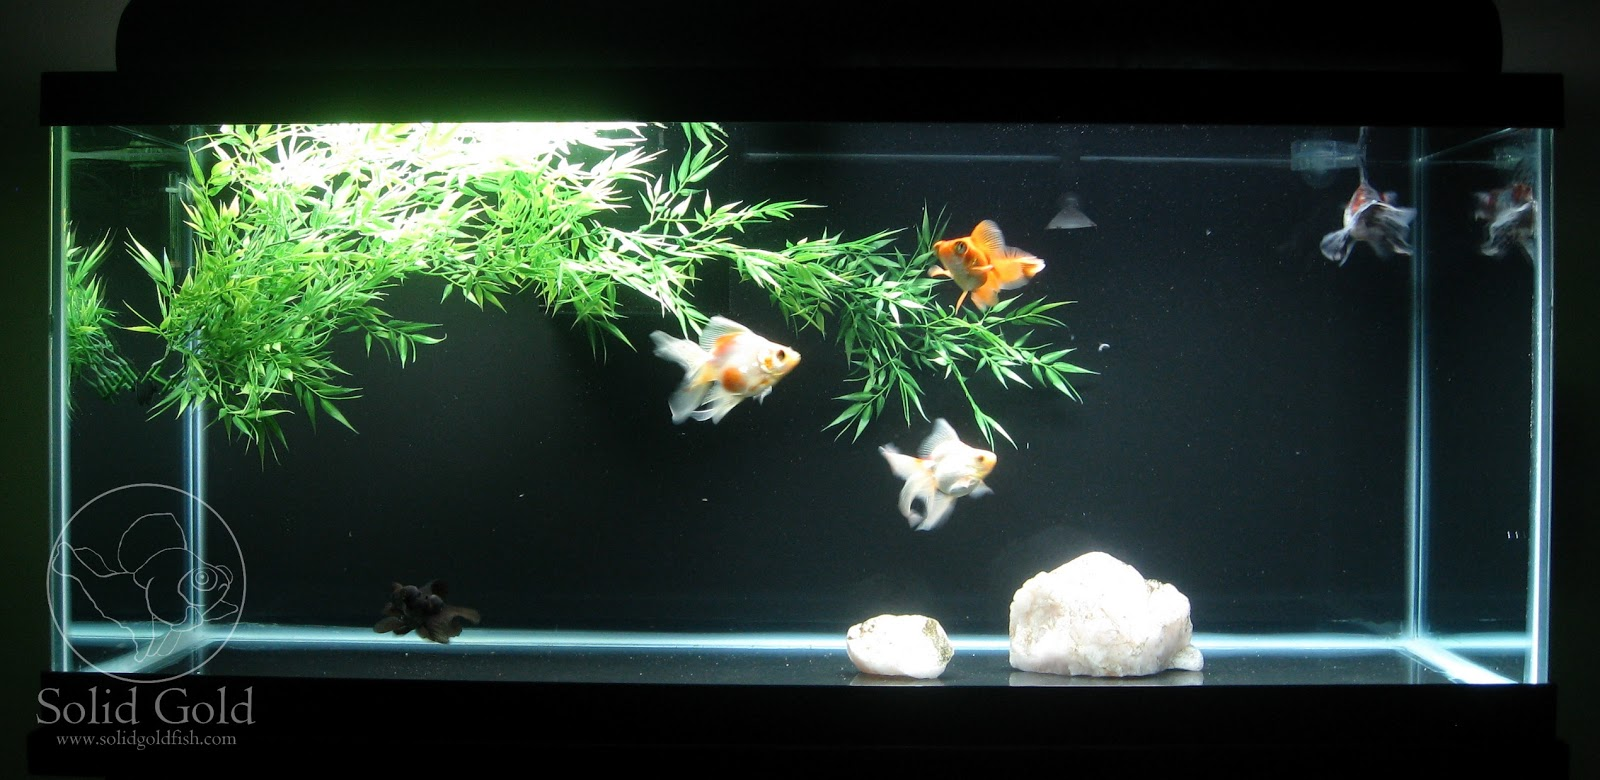 Talk to me about bare bottom tanks aquariums for Aquarium decoration for goldfish